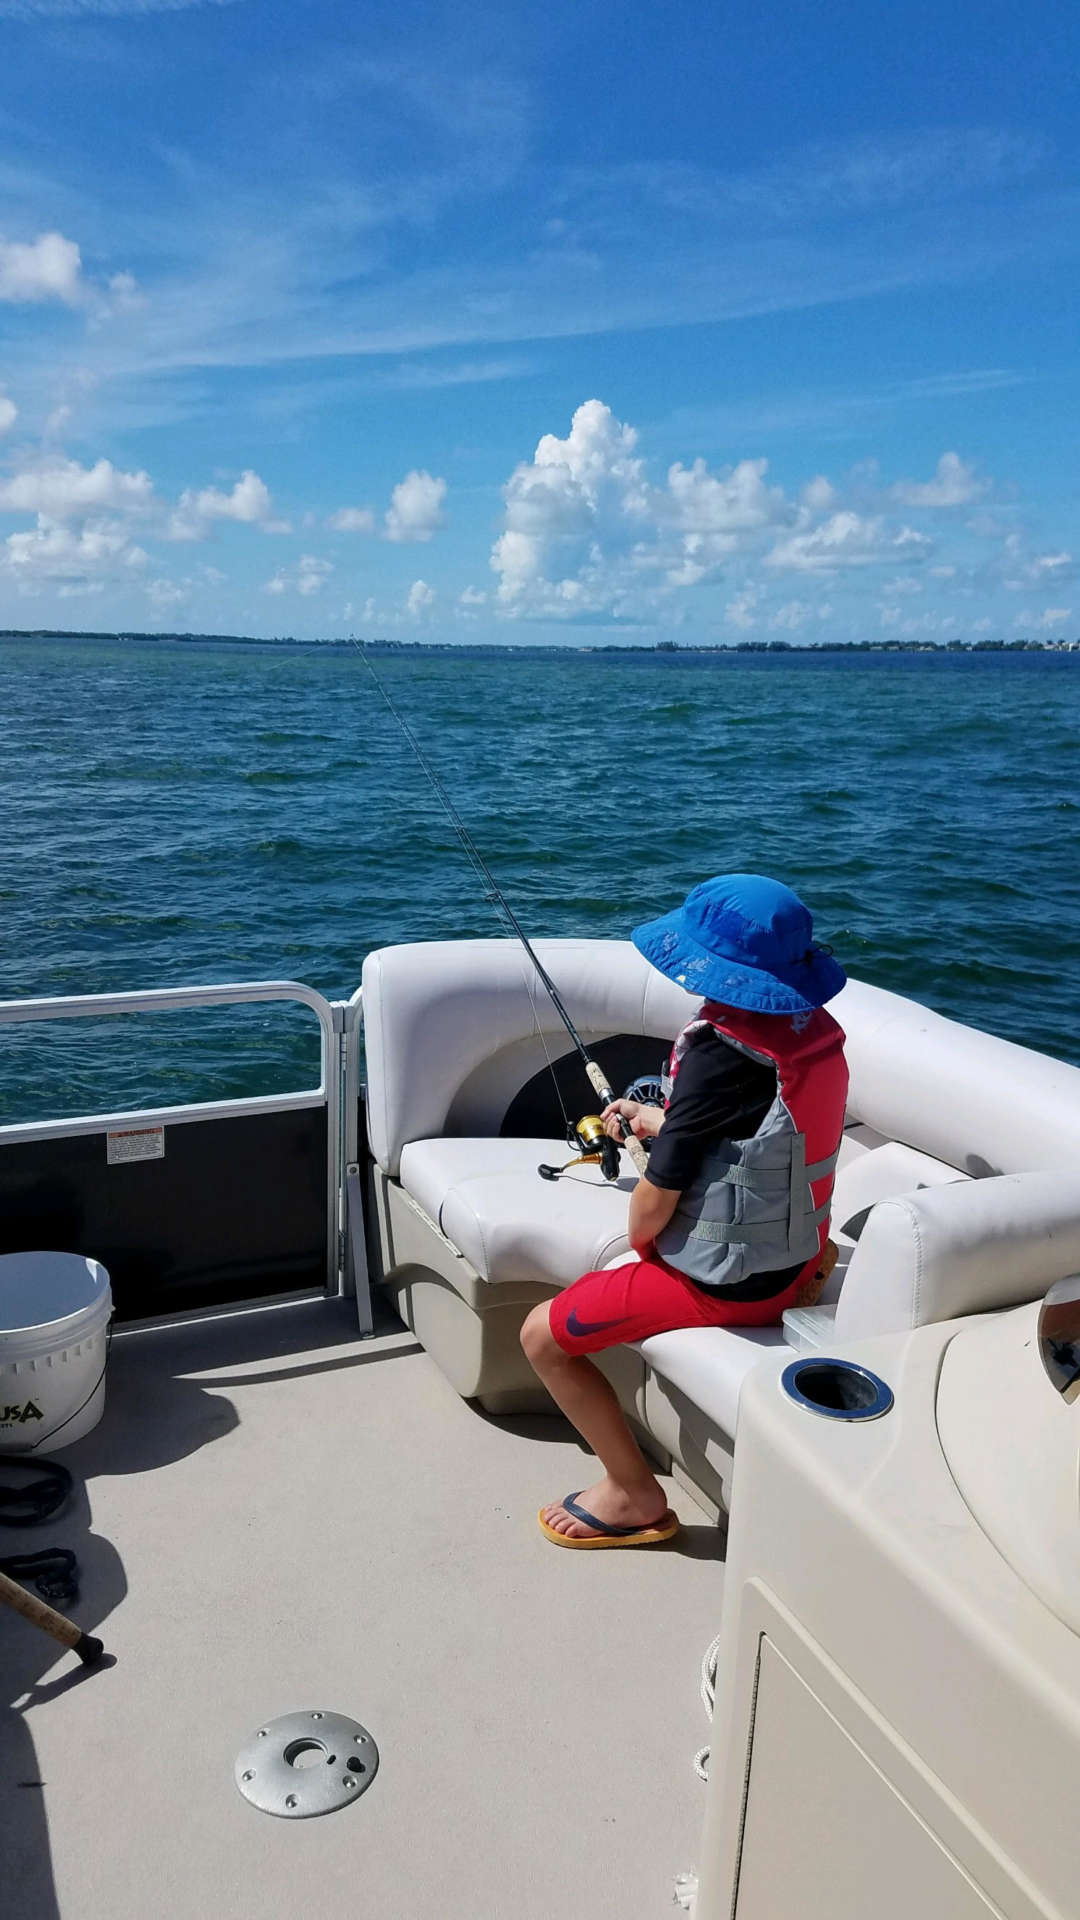 Child fishing on the boat